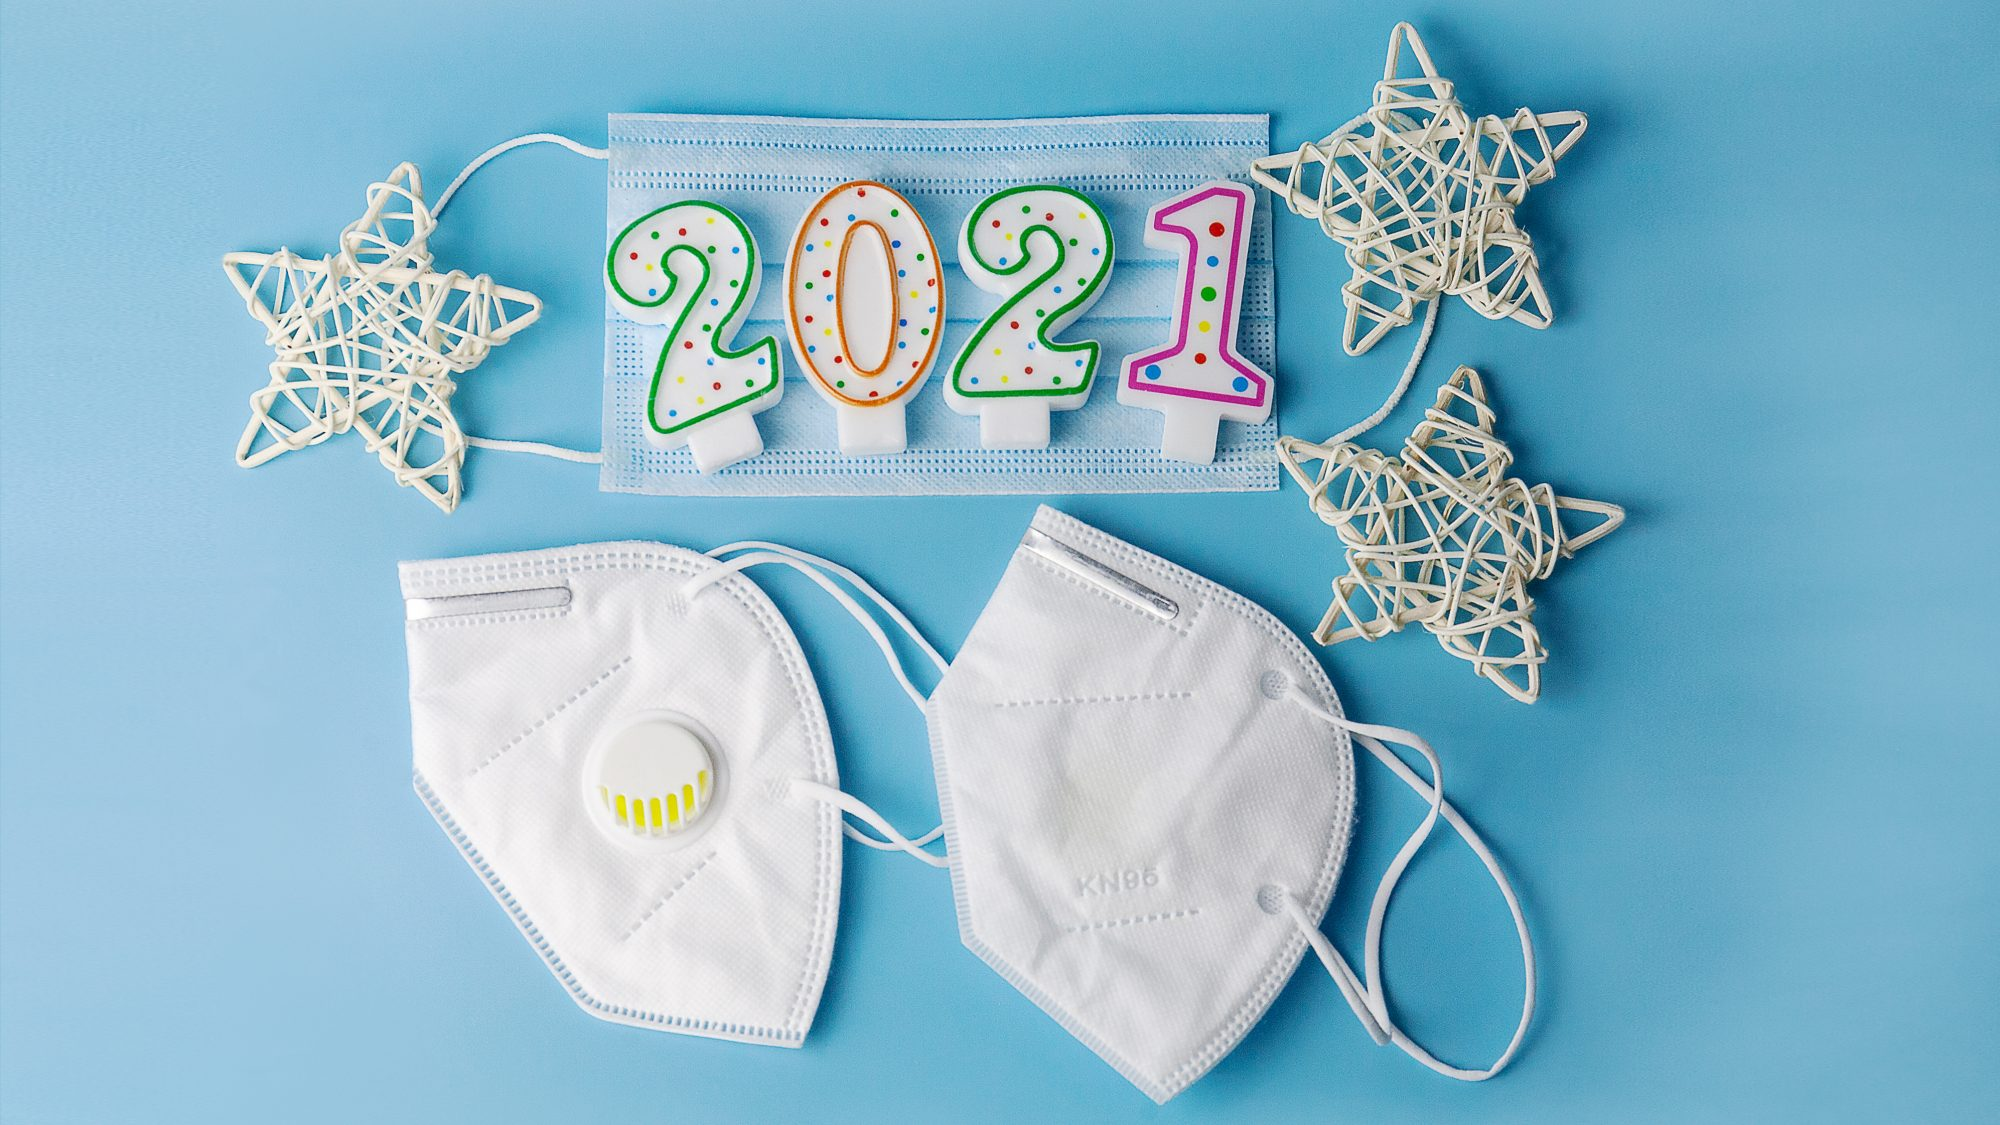 New Year's Eve 2020 safety tips - how to celebrate New Year's 2020 (2021 candles and masks)